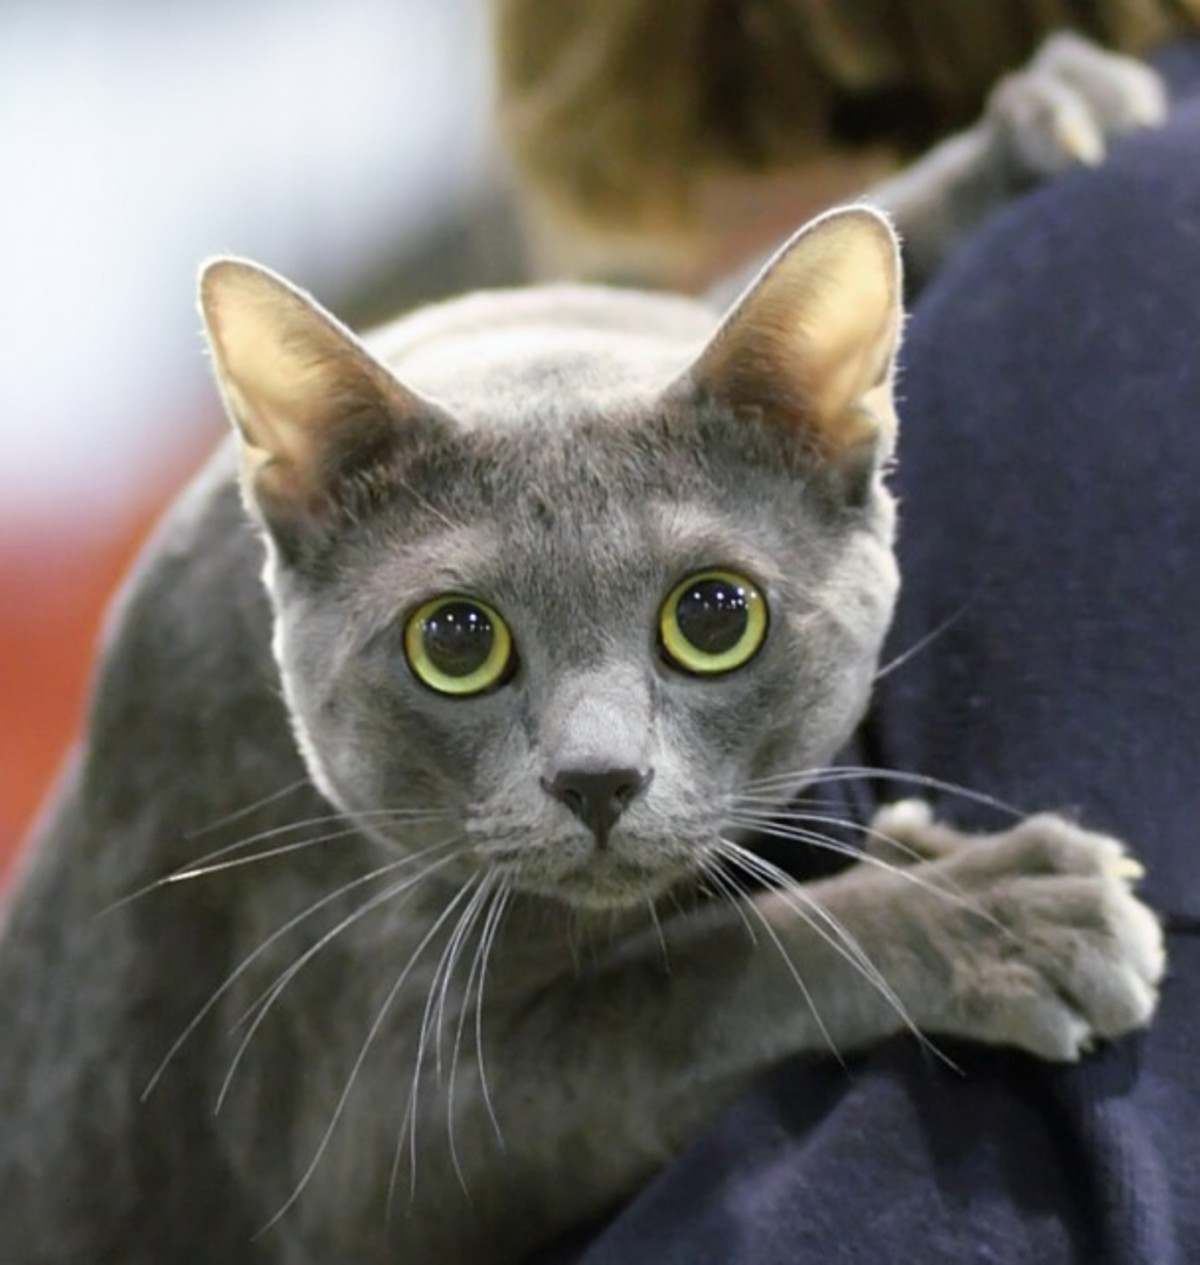 kitty spotlight: korat. The earliest known record for the Korat comes from the Cat-Book of Poems, or the Smud Khoi of Cats, produced some time during the Ayudhy